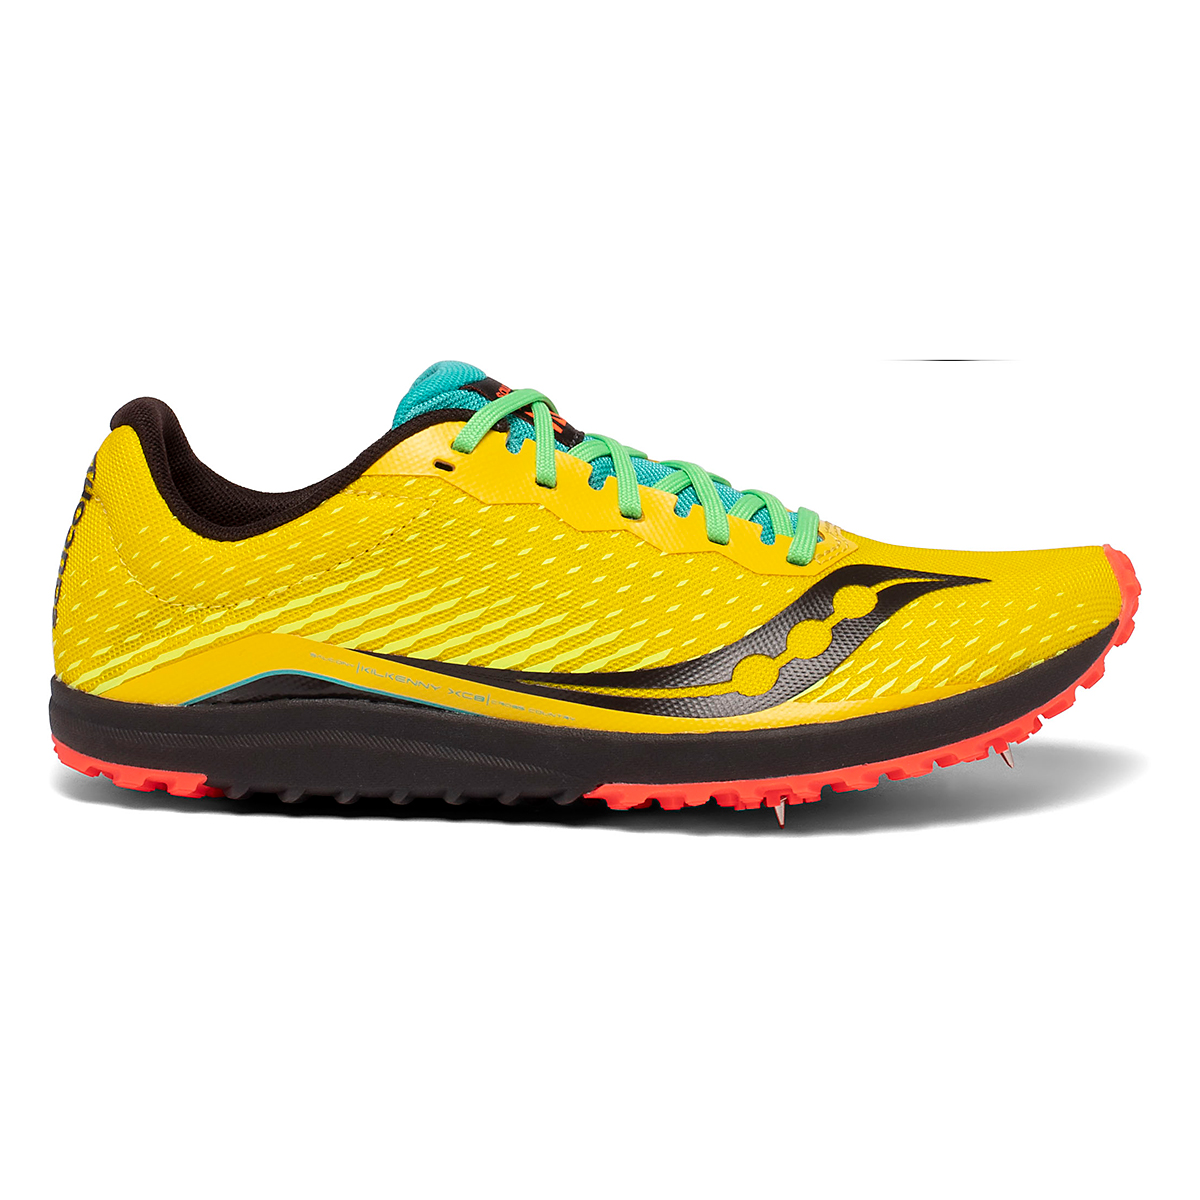 Men's Saucony Kilkenny XC8 Track Spikes - Color: Yellow Mutant - Size: 8 - Width: Regular, Yellow Mutant, large, image 1